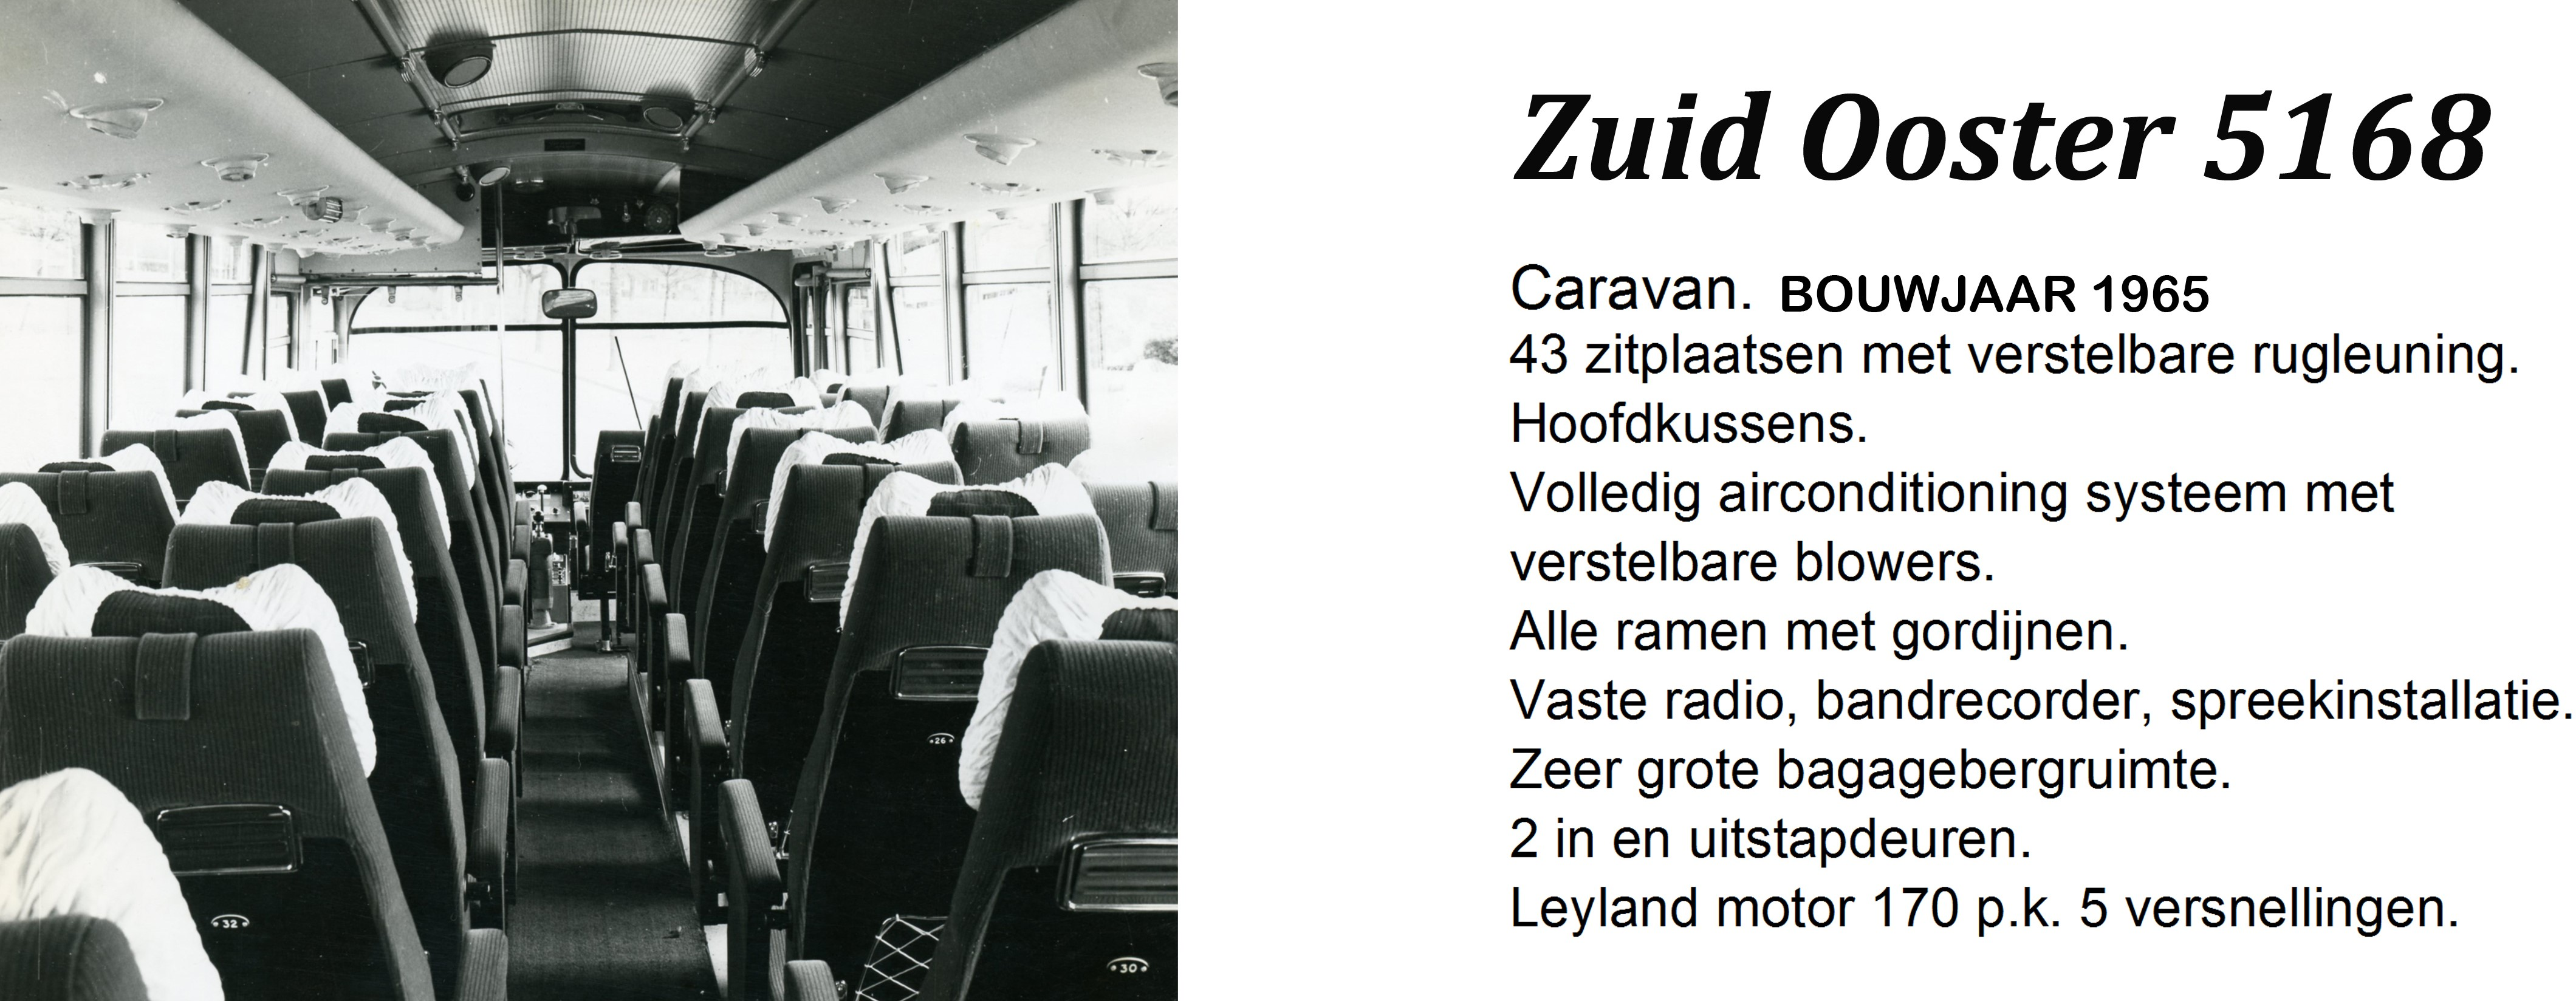 5168-Zuid-Ooster-1